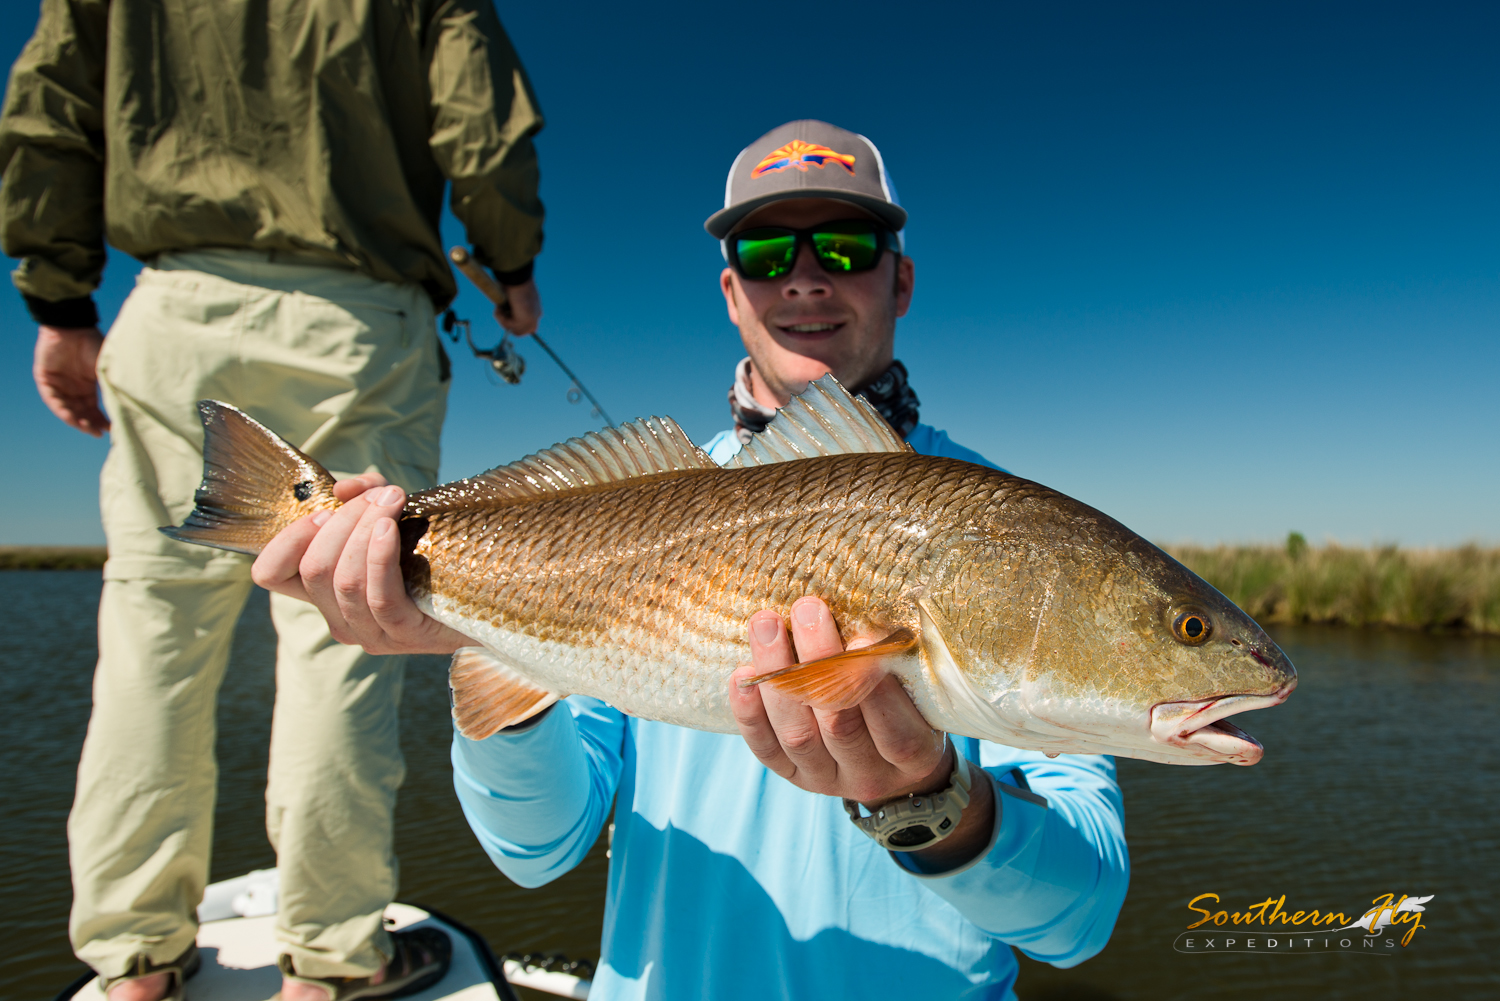 Georgia Anglers Love Fly Fishing in New Orleans